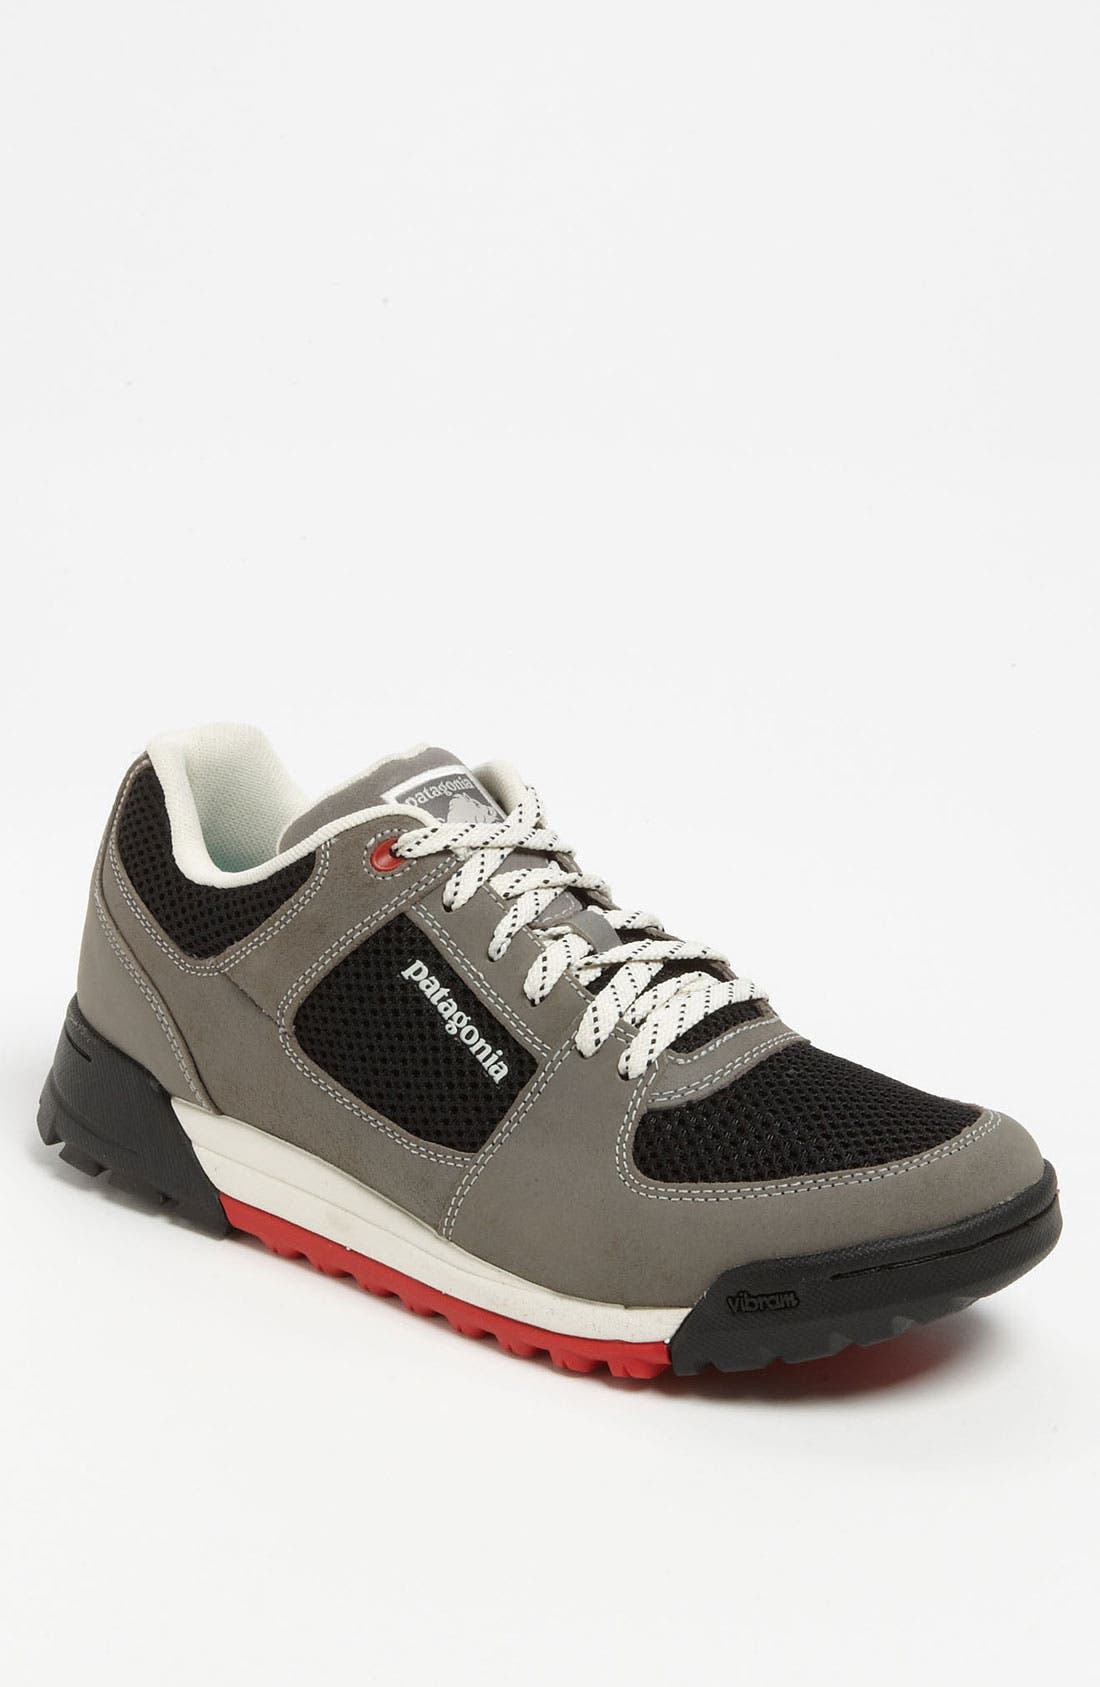 Alternate Image 1 Selected - Patagonia 'Javelina AC' Walking Shoe (Men) (Online Only)